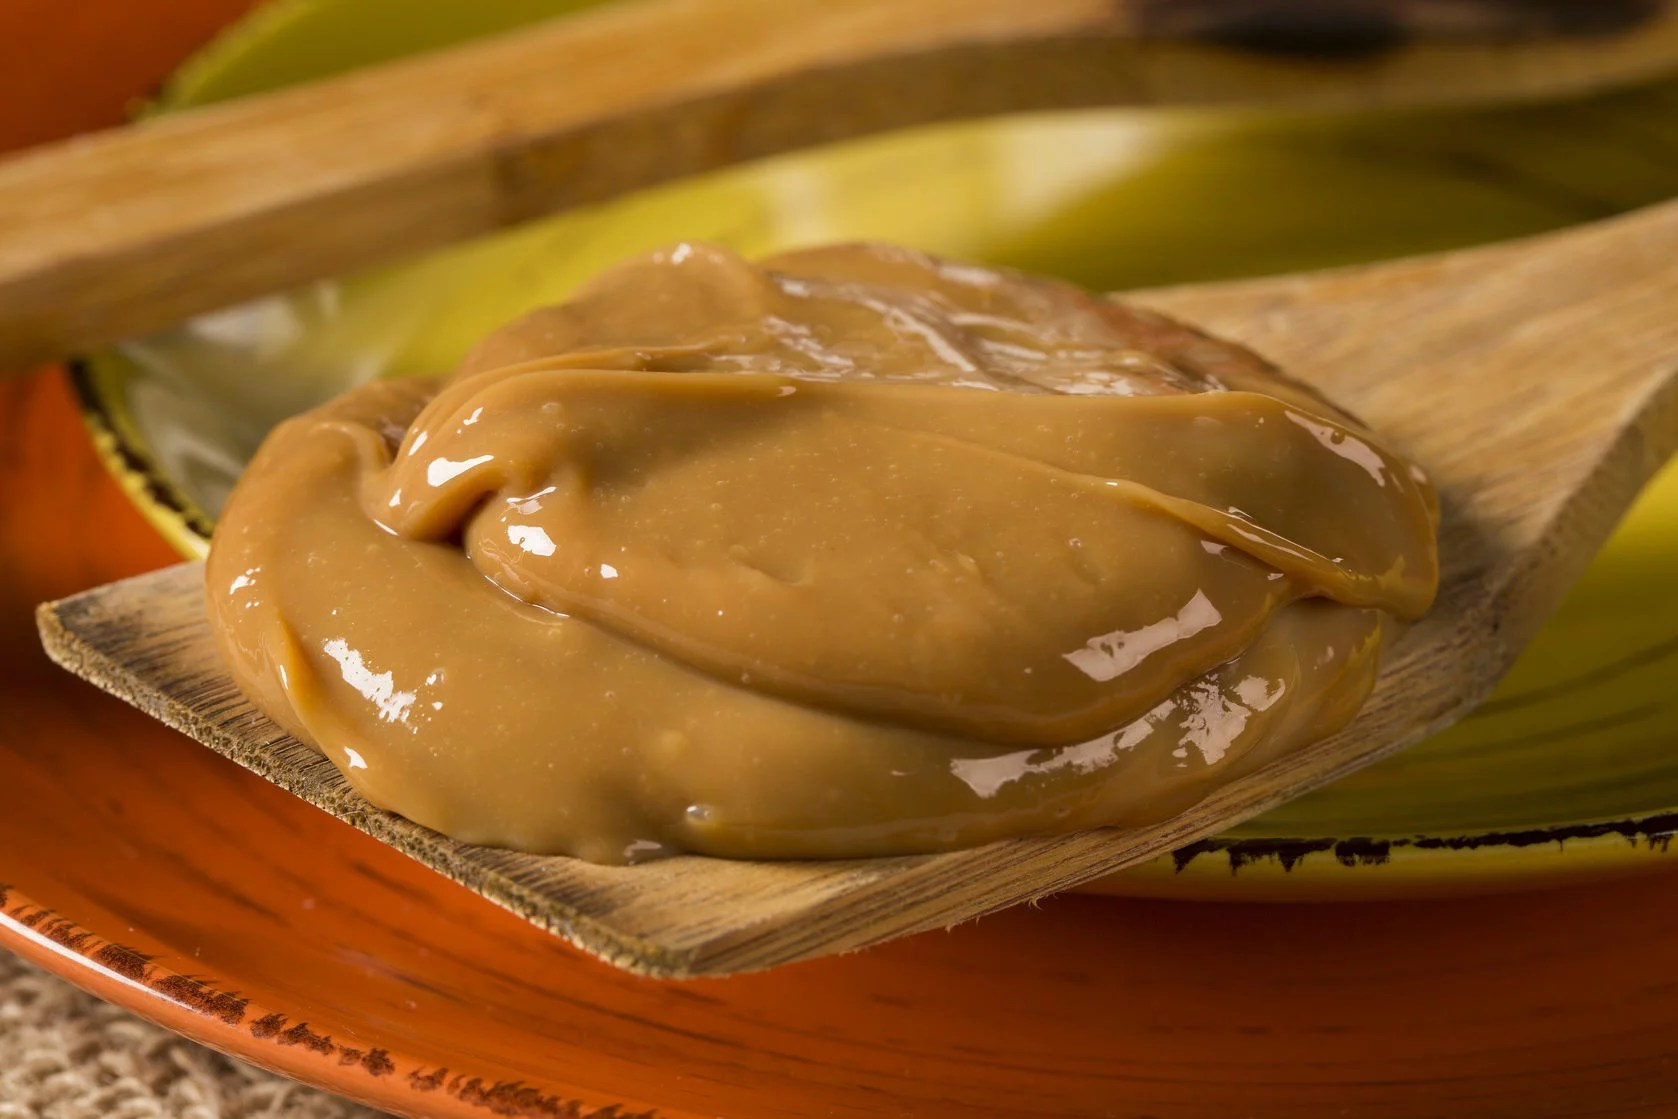 62130157 - dulce de leche, (doce de leite) a sweet made from milk, made in brazil and argentina